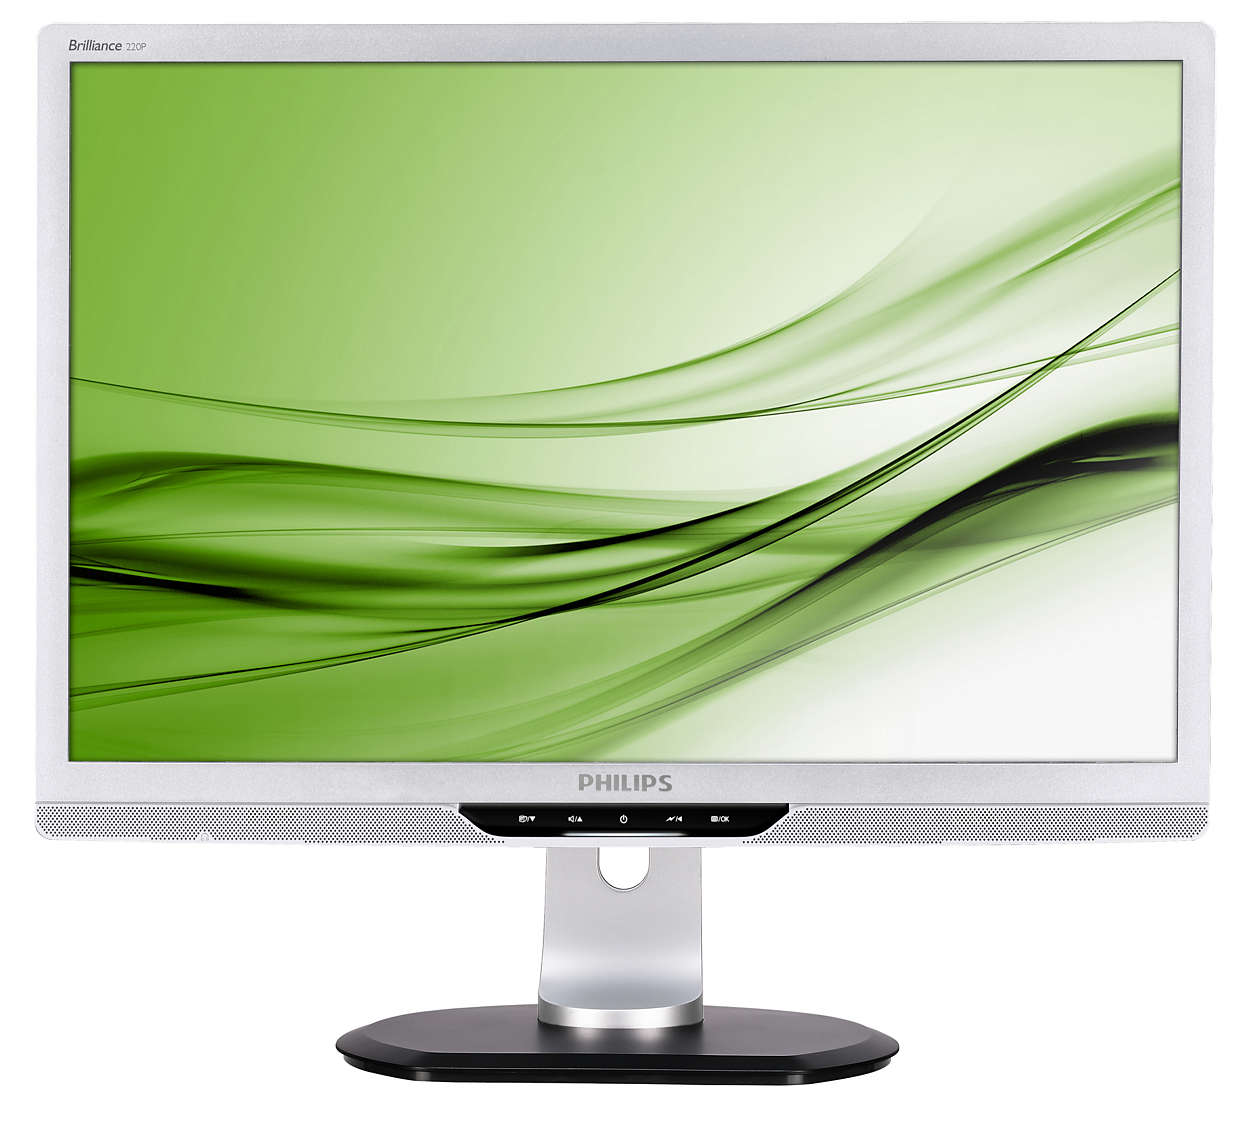 lcd monitor mit drehbarem fu usb und audio 220p2es 00. Black Bedroom Furniture Sets. Home Design Ideas